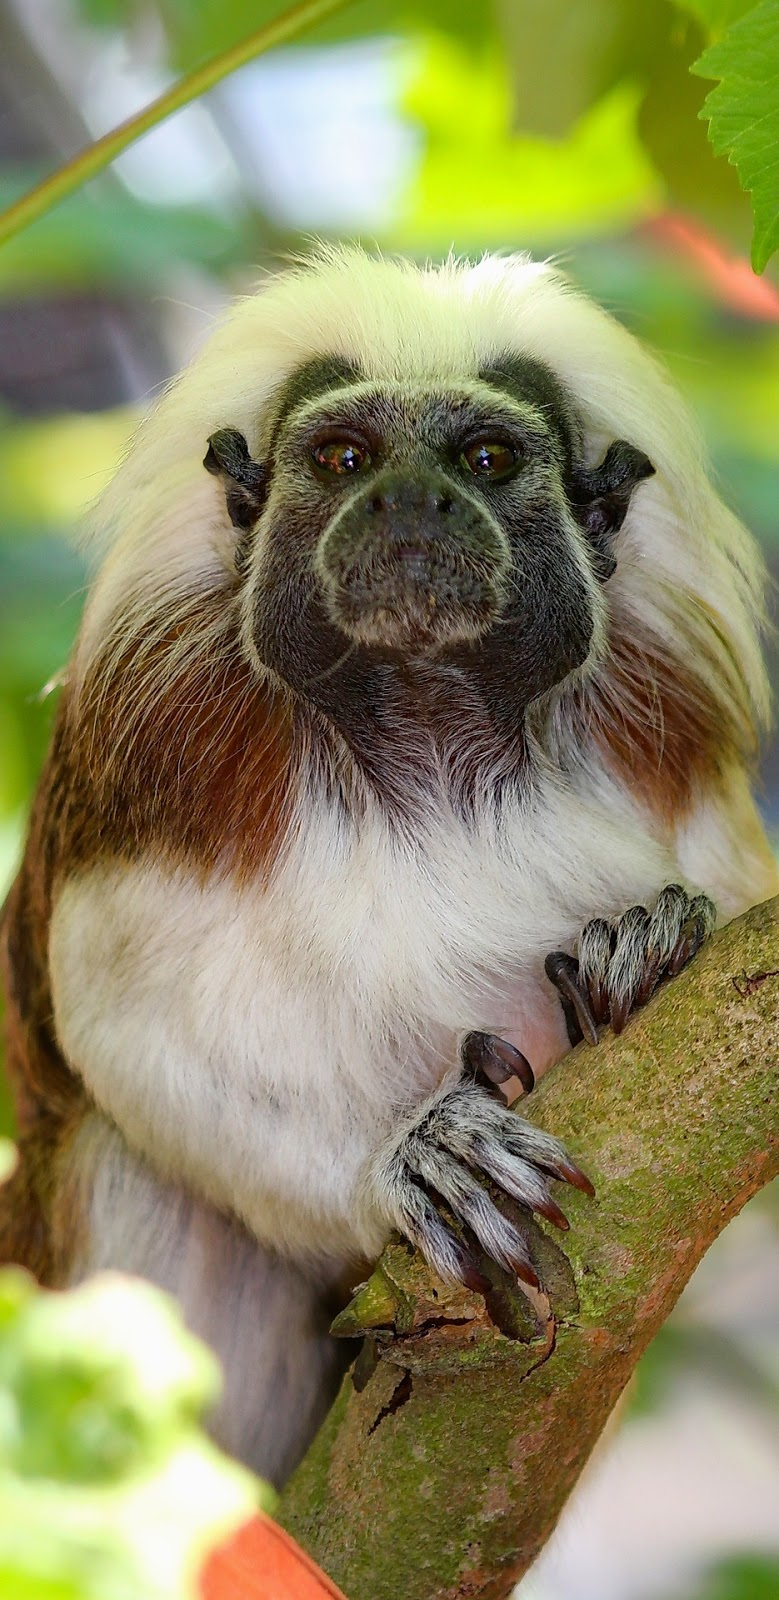 Picture of a tamarin.